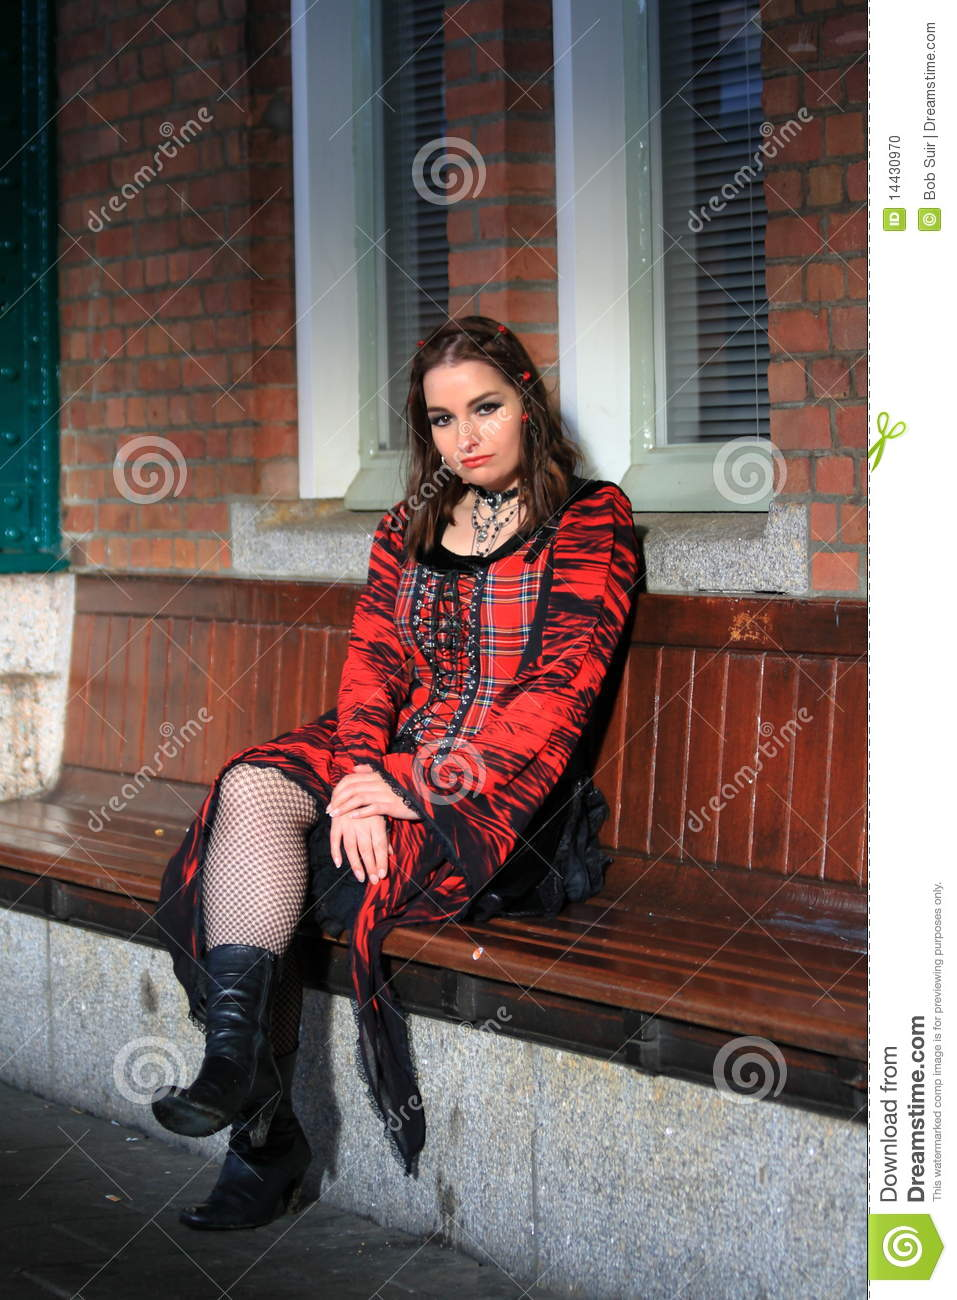 Modern dress clothes for a woman - Girl Sitting On Bench Wearing Red Dress Stock Photo Image 14430970